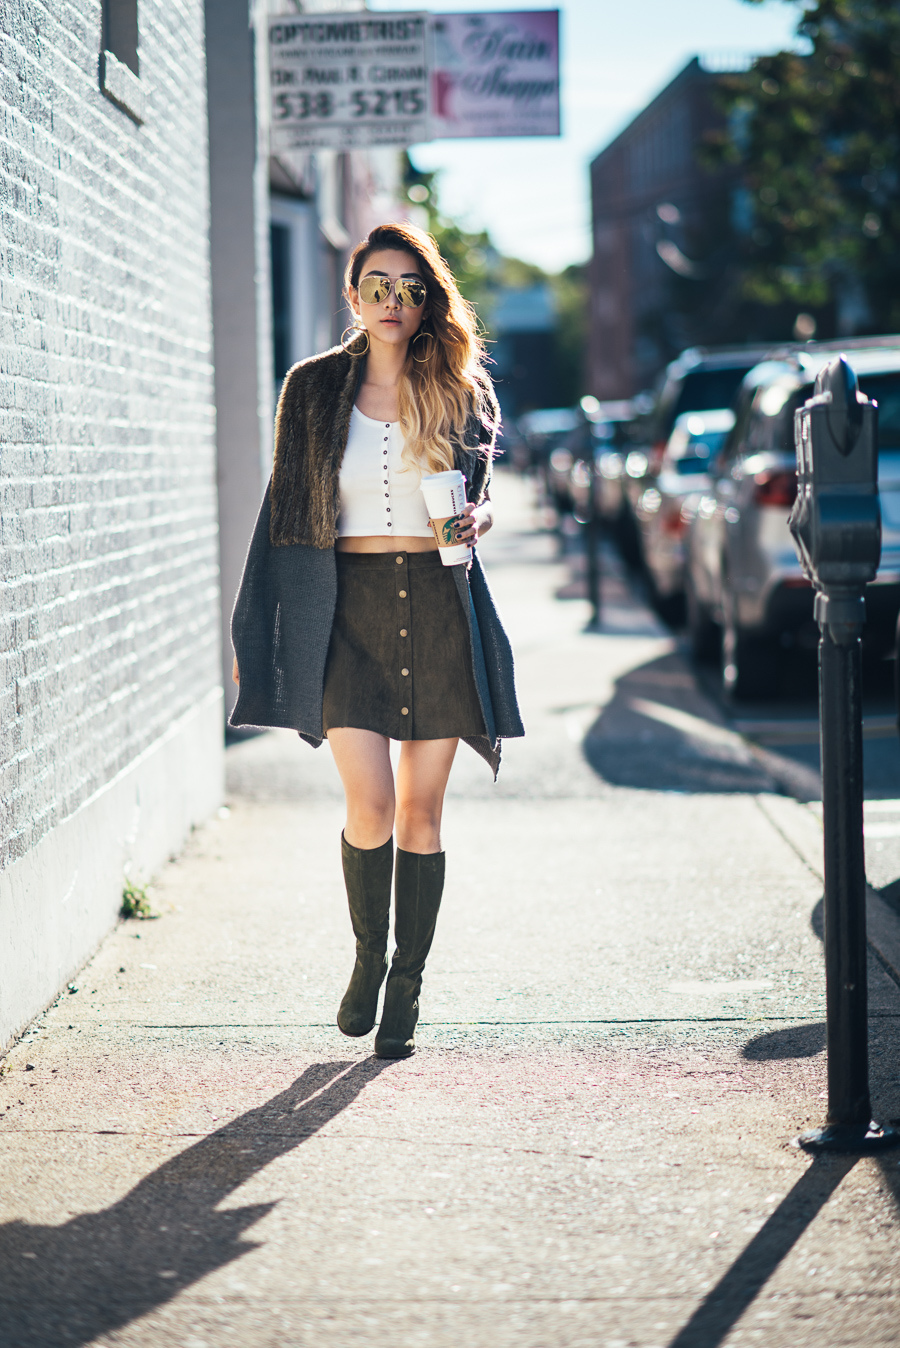 Button front skirts are all the rage this fall. Via Not Jess Fashion. Boots: SkinnyCalf, Fur Vest: Foxiedox, Top/Skirt: Forever21.